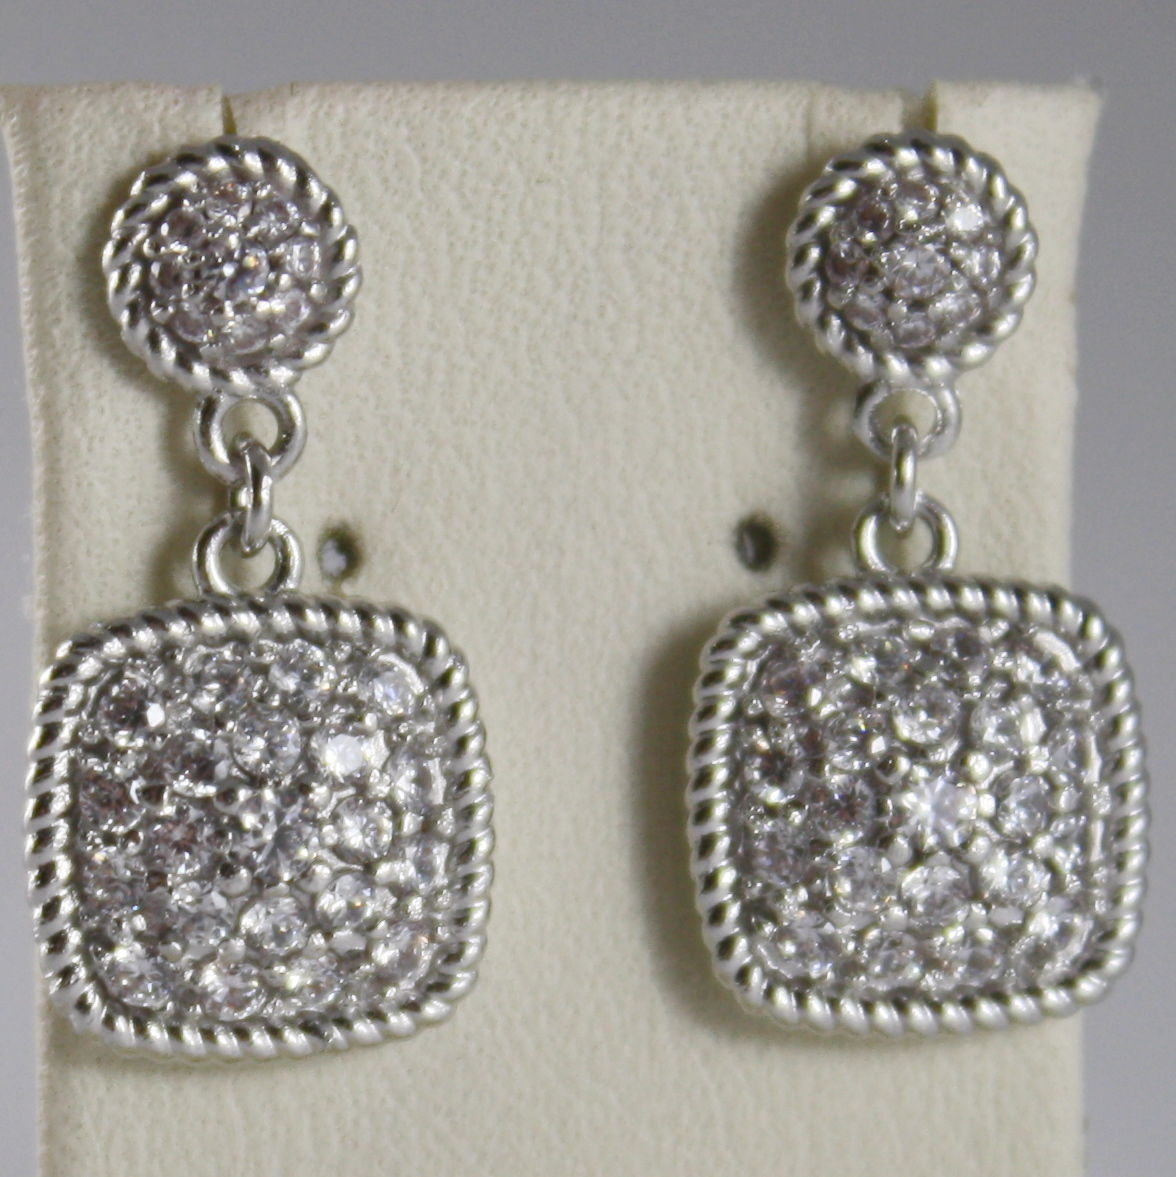 RHODIUM BRONZE EARRINGS SQUARE CUBIC ZIRCONIA B14OBB14, BY REBECCA MADE IN ITAL